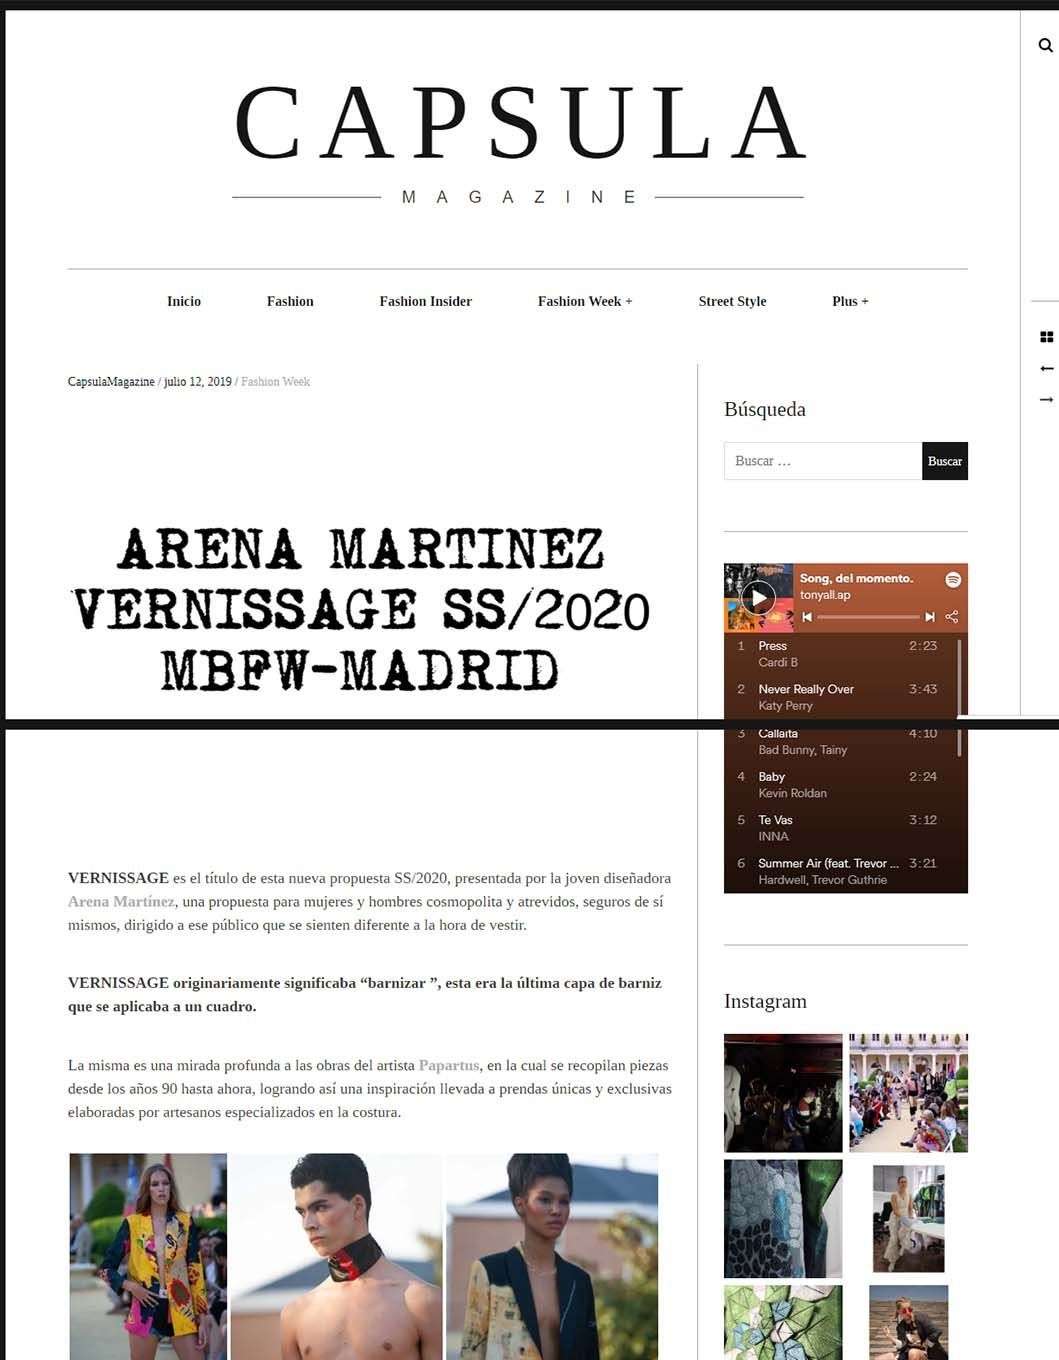 Contemporary art and fashion online store in Madrid - Spain - Arena Martínez - MBFWM - 2020 - Capsula